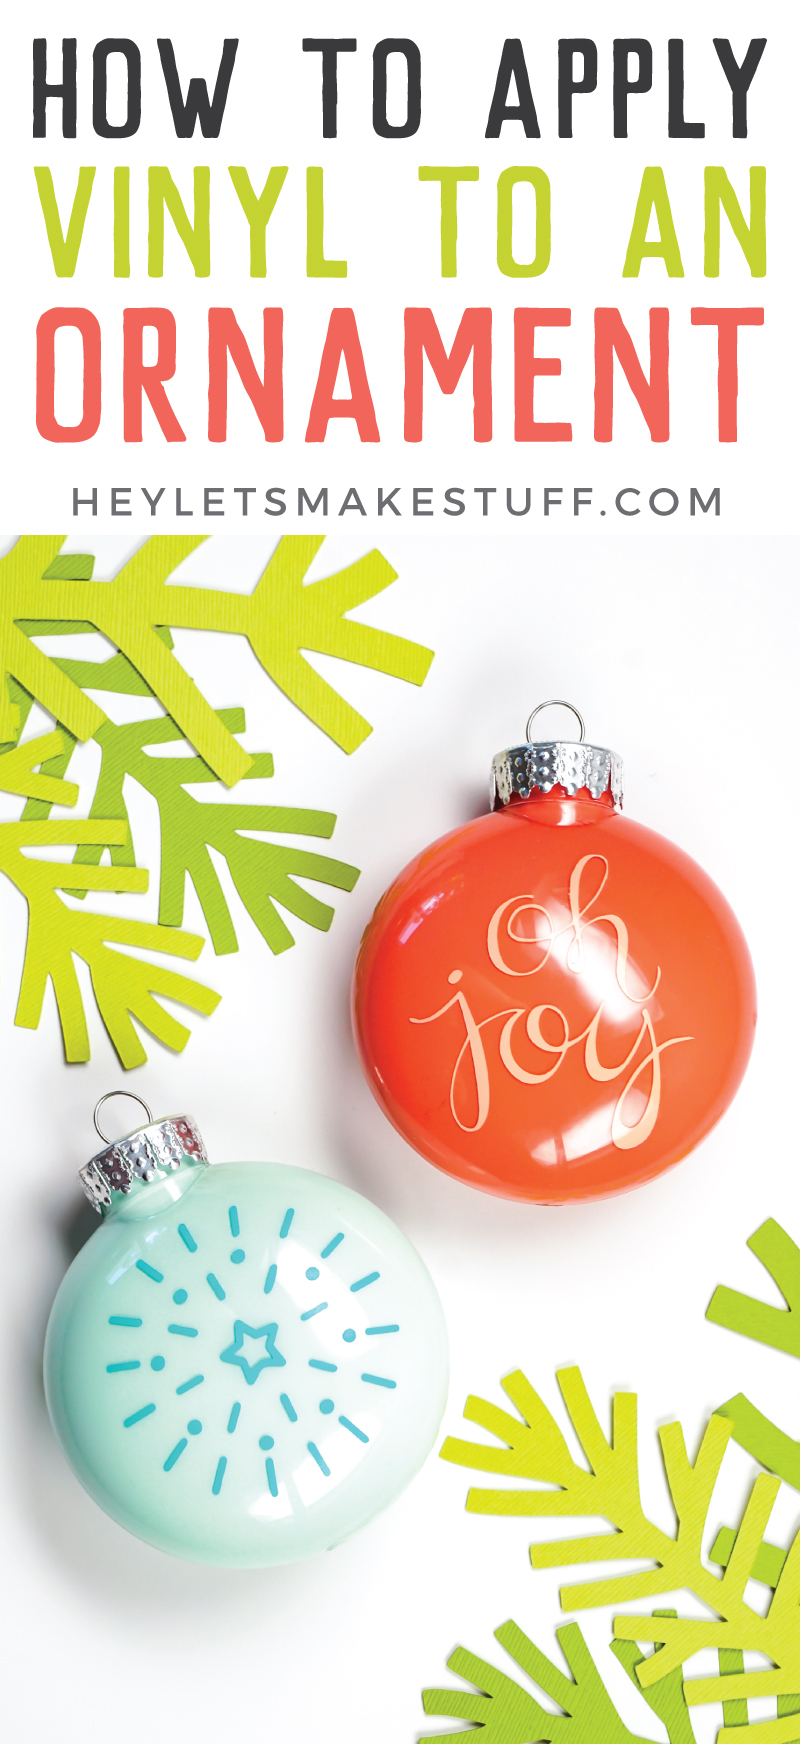 Making custom ornaments with your Cricut is easy, but how do you apply vinyl to an ornament without wrinkling? Here are my best tips and tricks for making the perfect DIY ornament. via @heyletsmakestuf